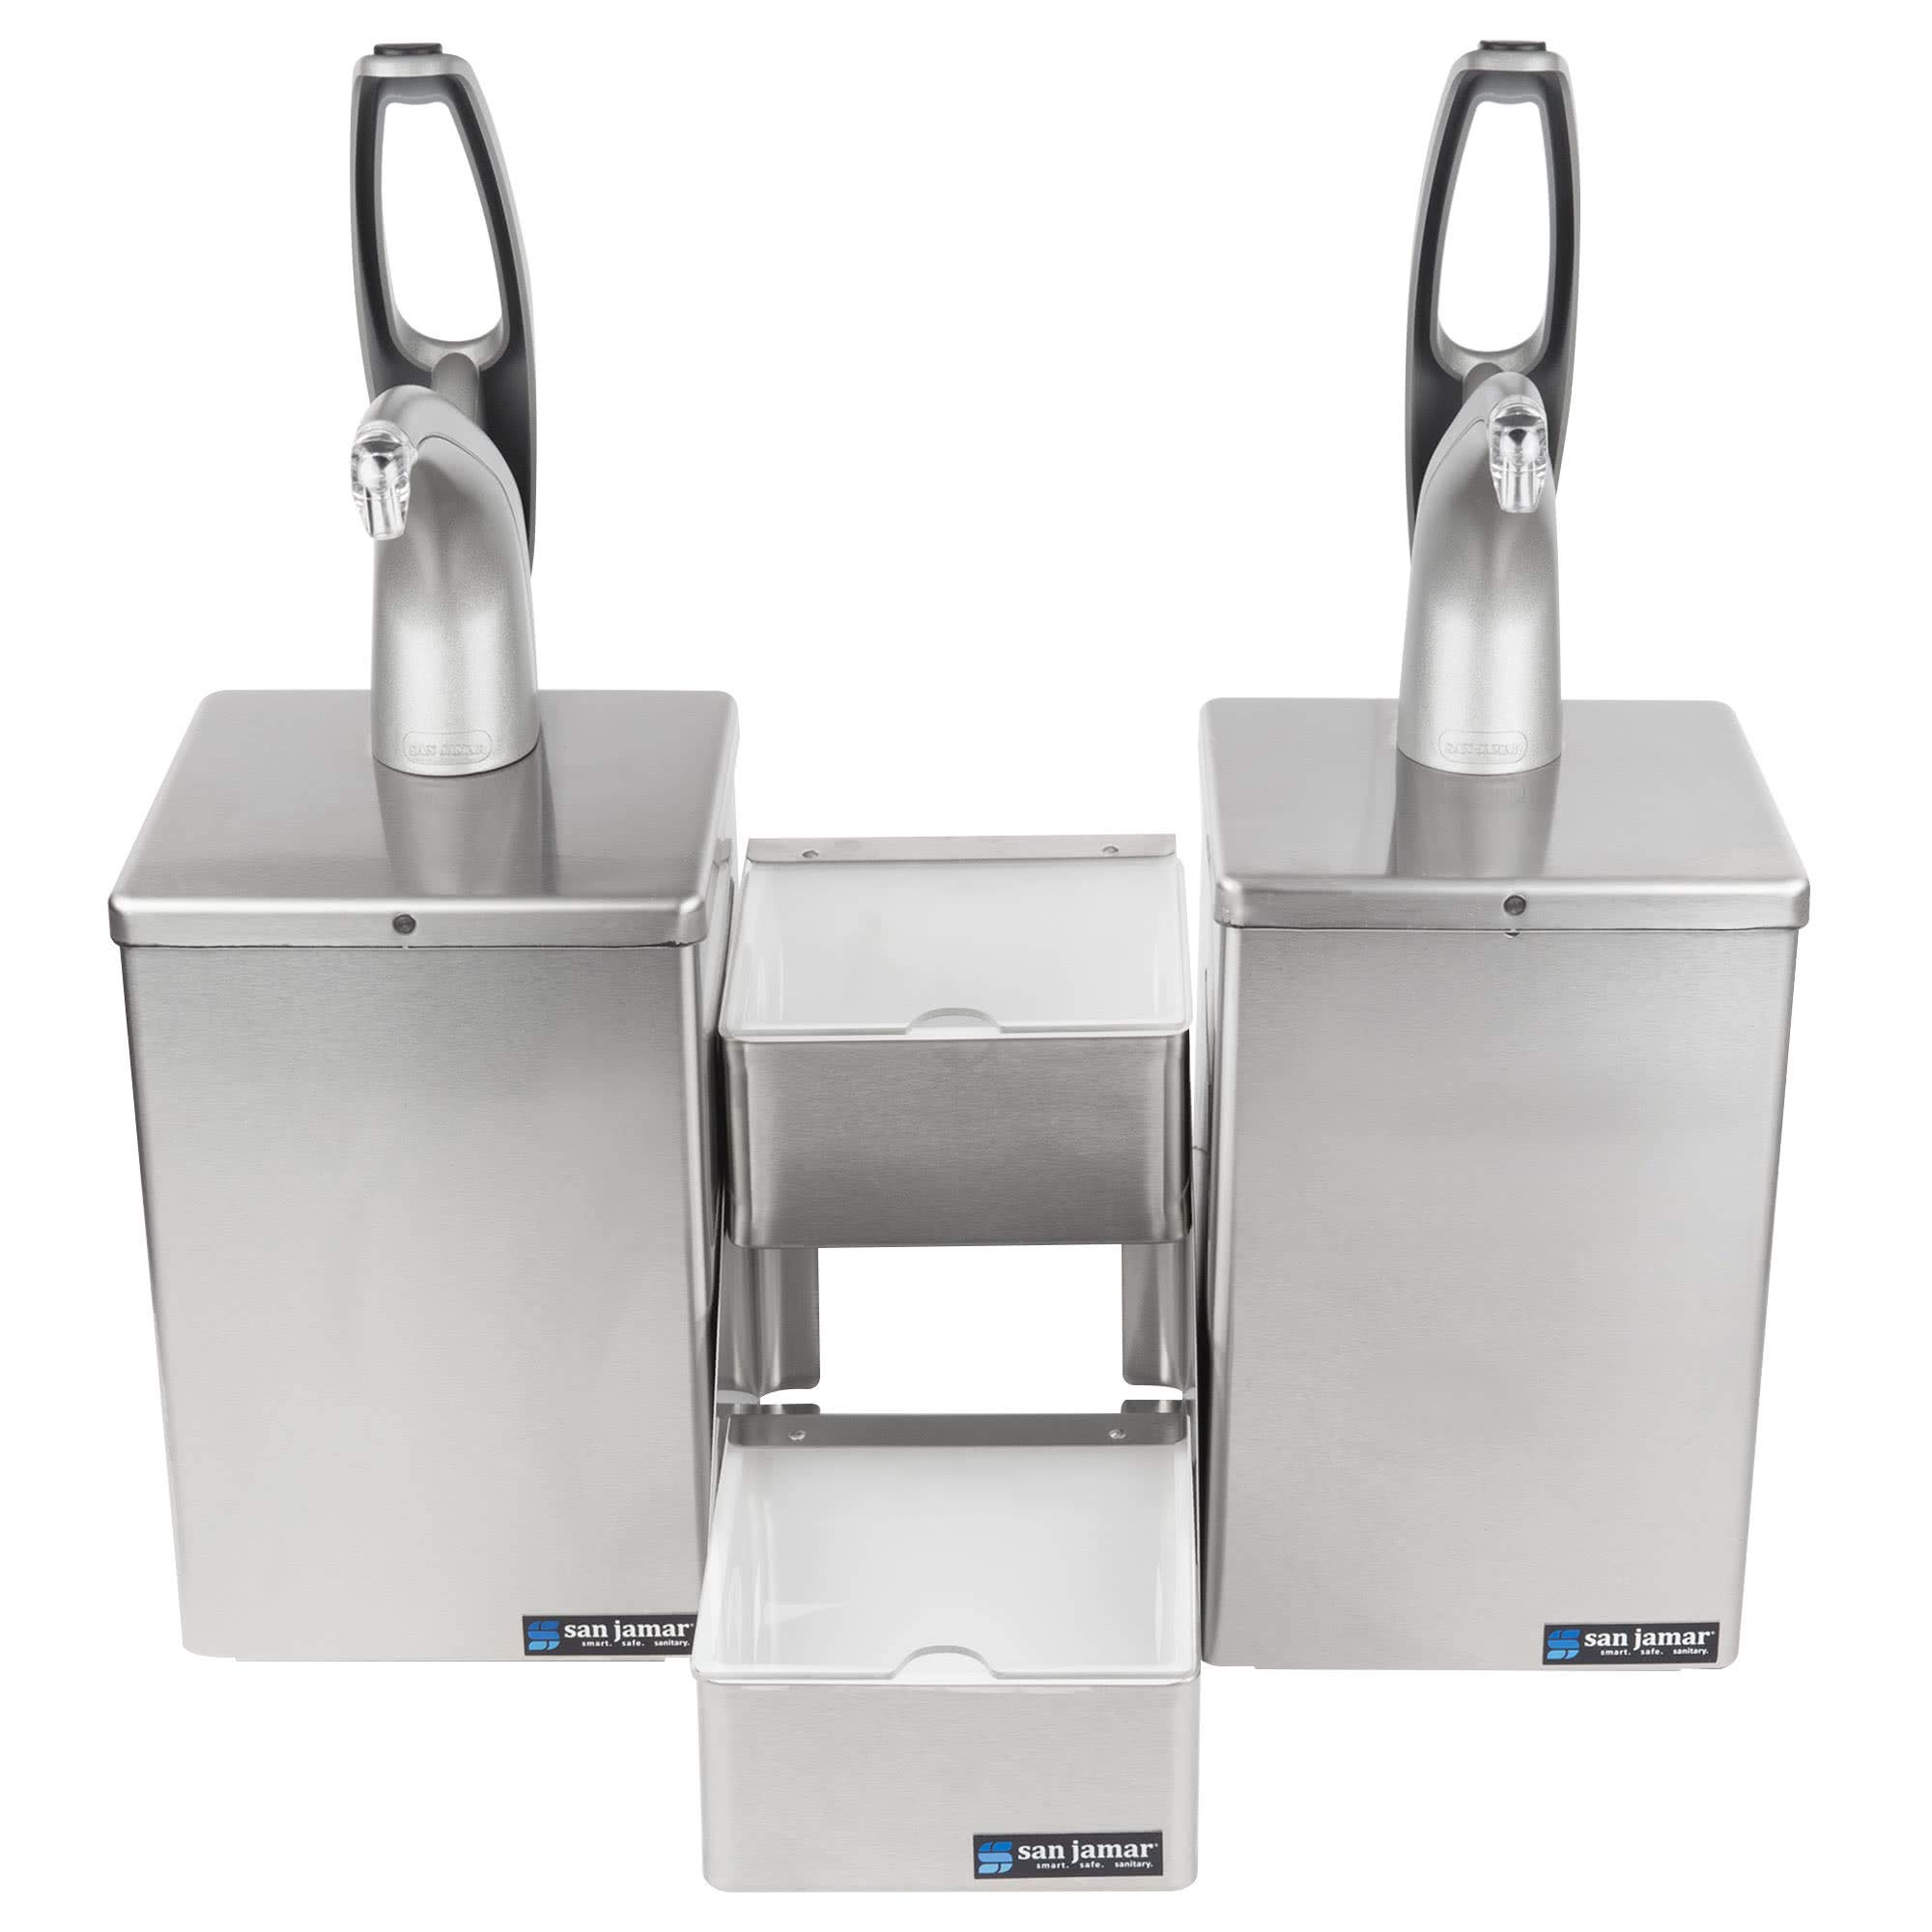 TableTop King P4826 FrontLine Dual Pump Condiment System with Stepped Trays - Metal Finish by TableTop King